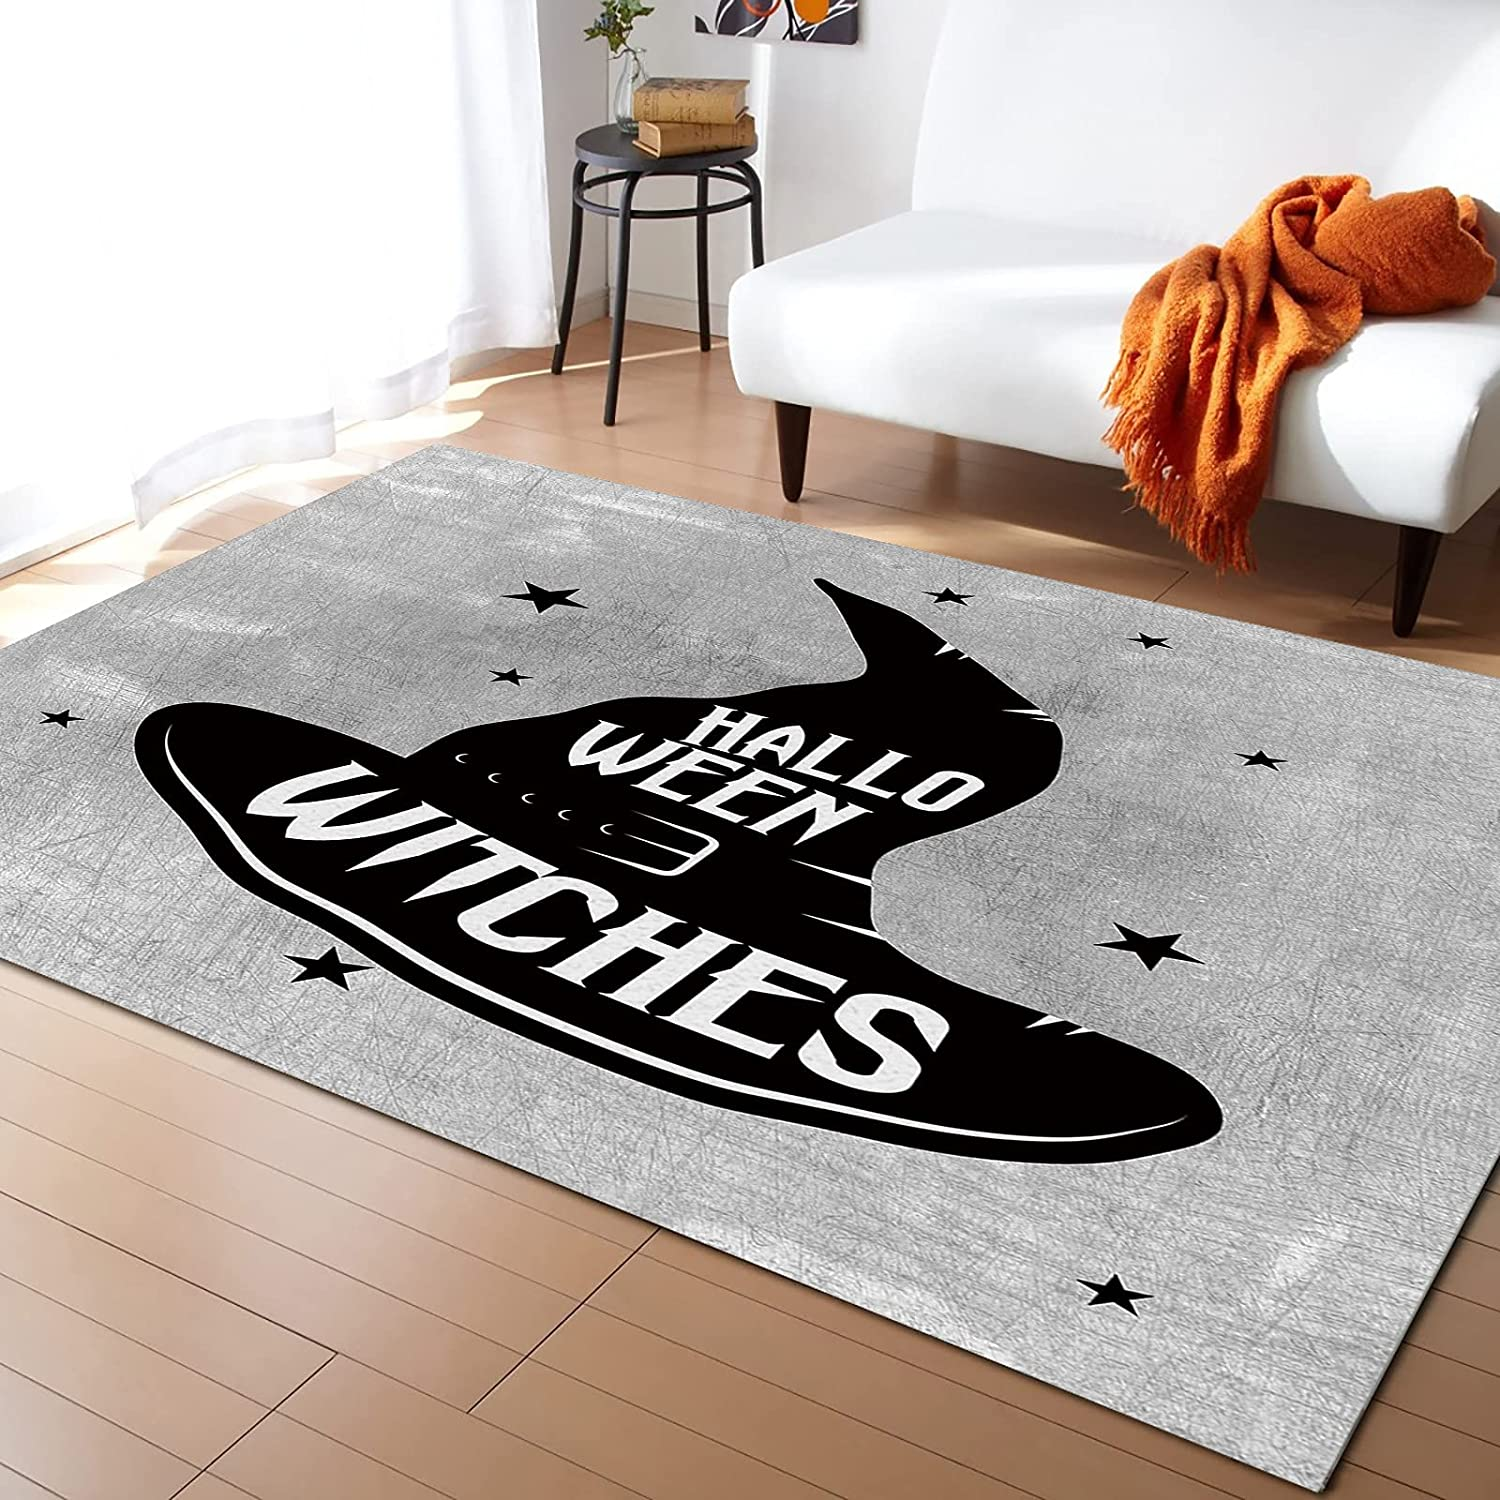 Max 86% OFF LEOSUCRE Large Area Rugs 5' x Challenge the lowest price of Japan ☆ Halloween Carp Wizard Throw 8' Hat